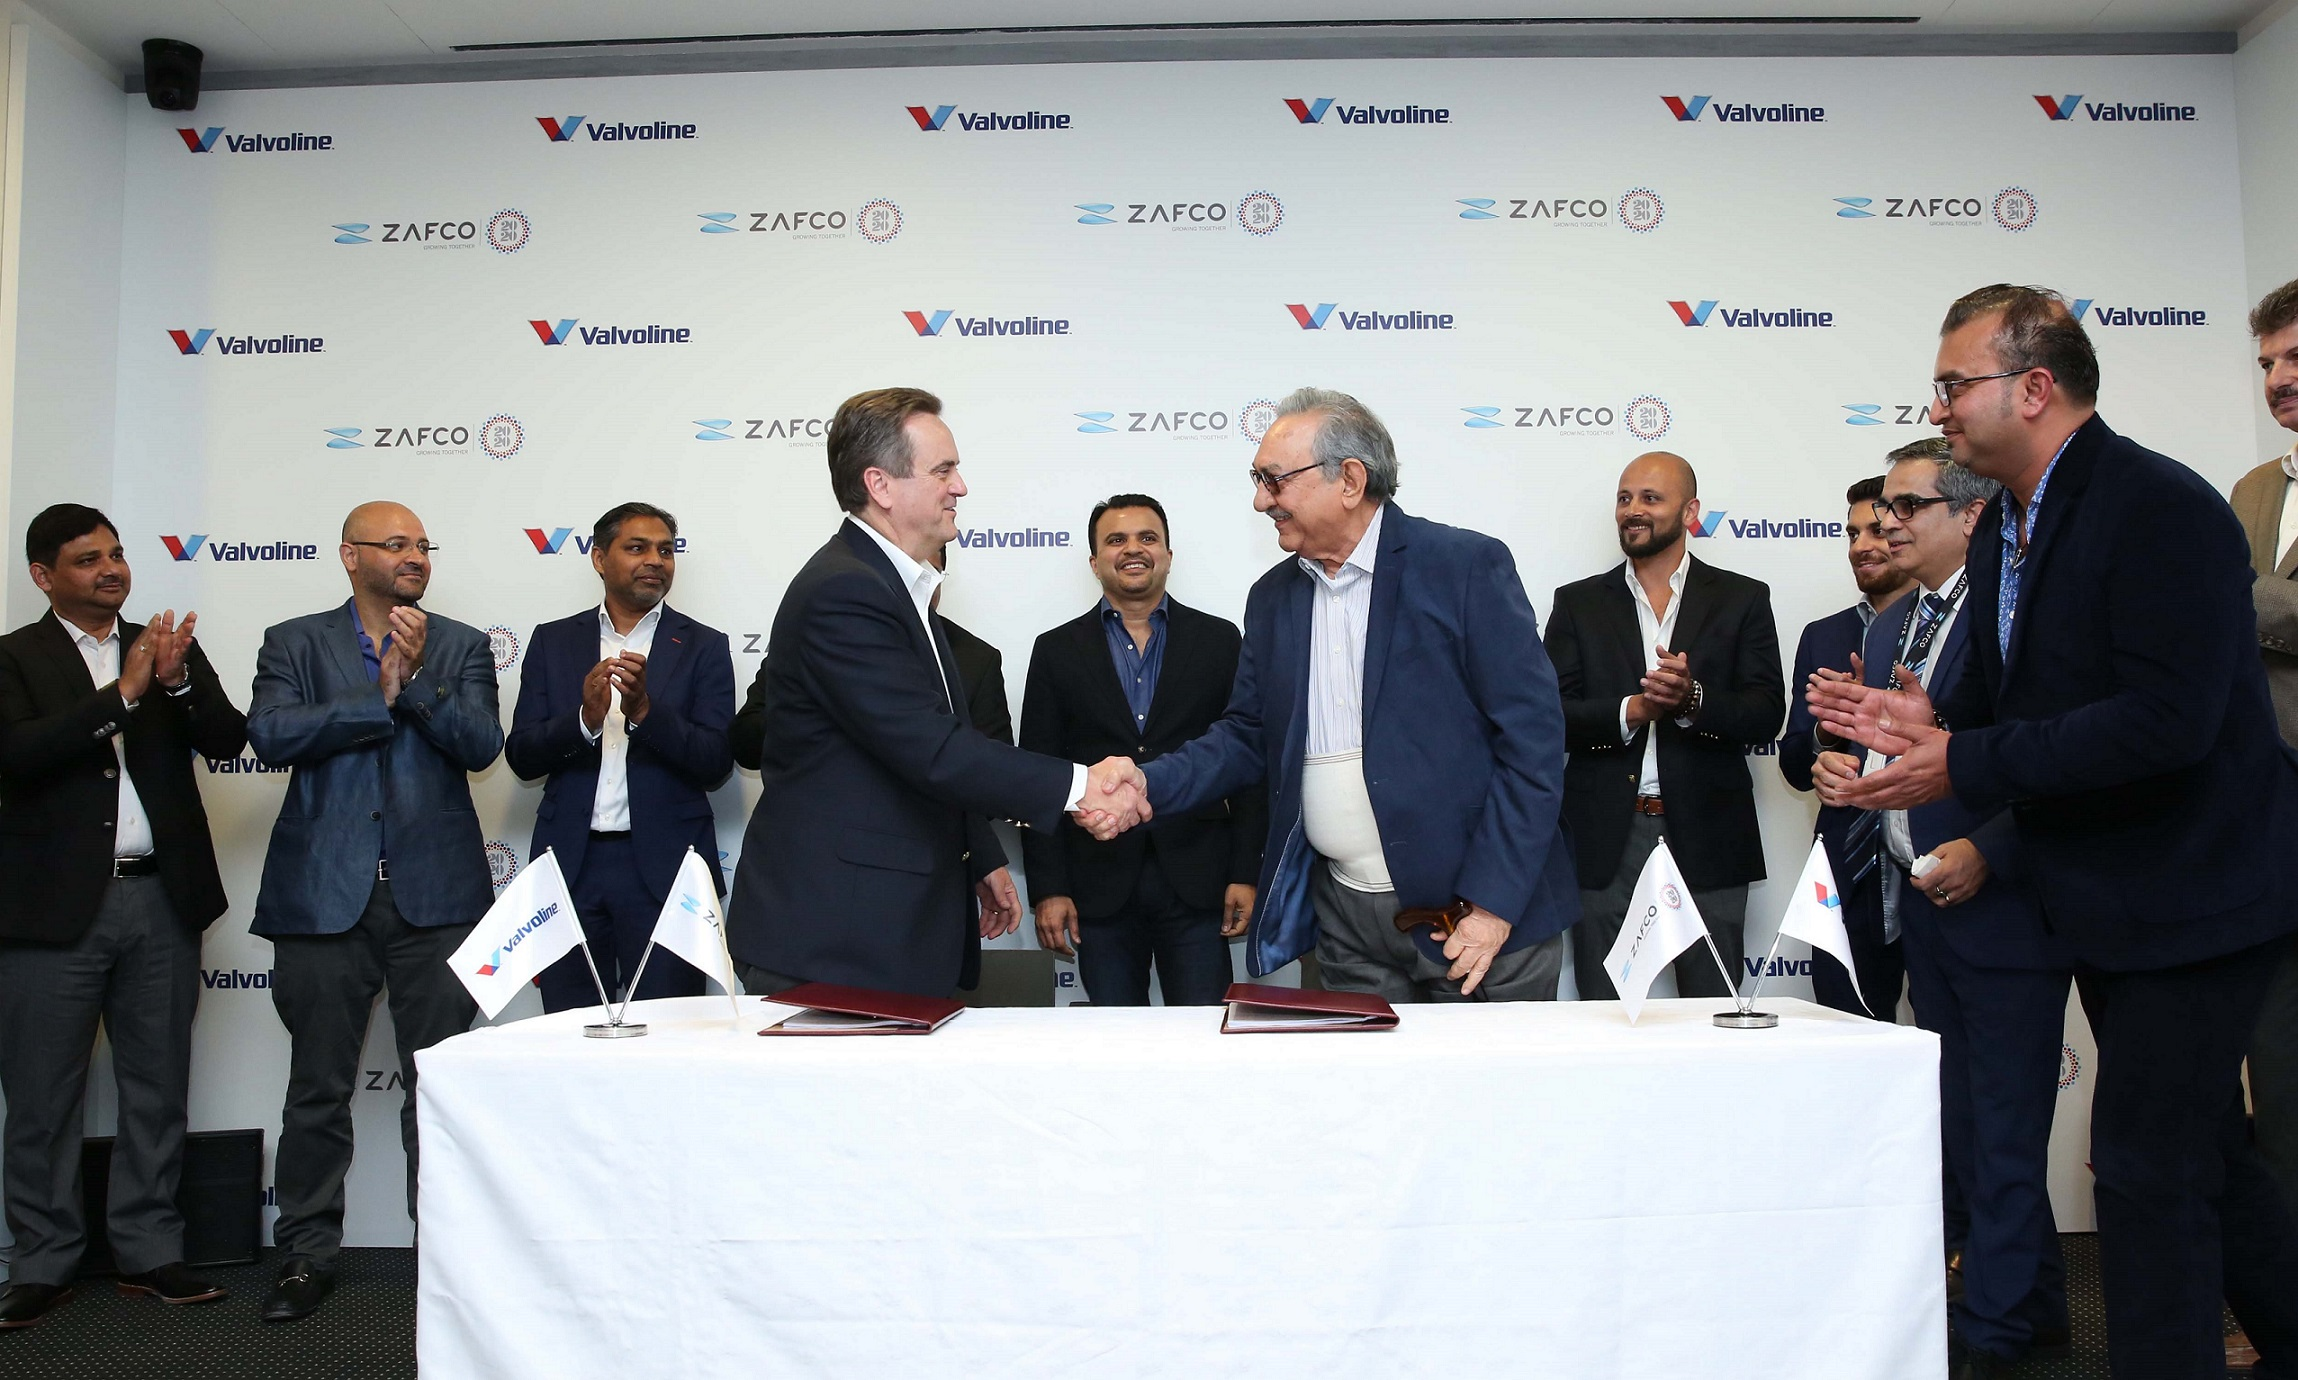 Valvoline Announces Partnership with ZAFCO in the UAE